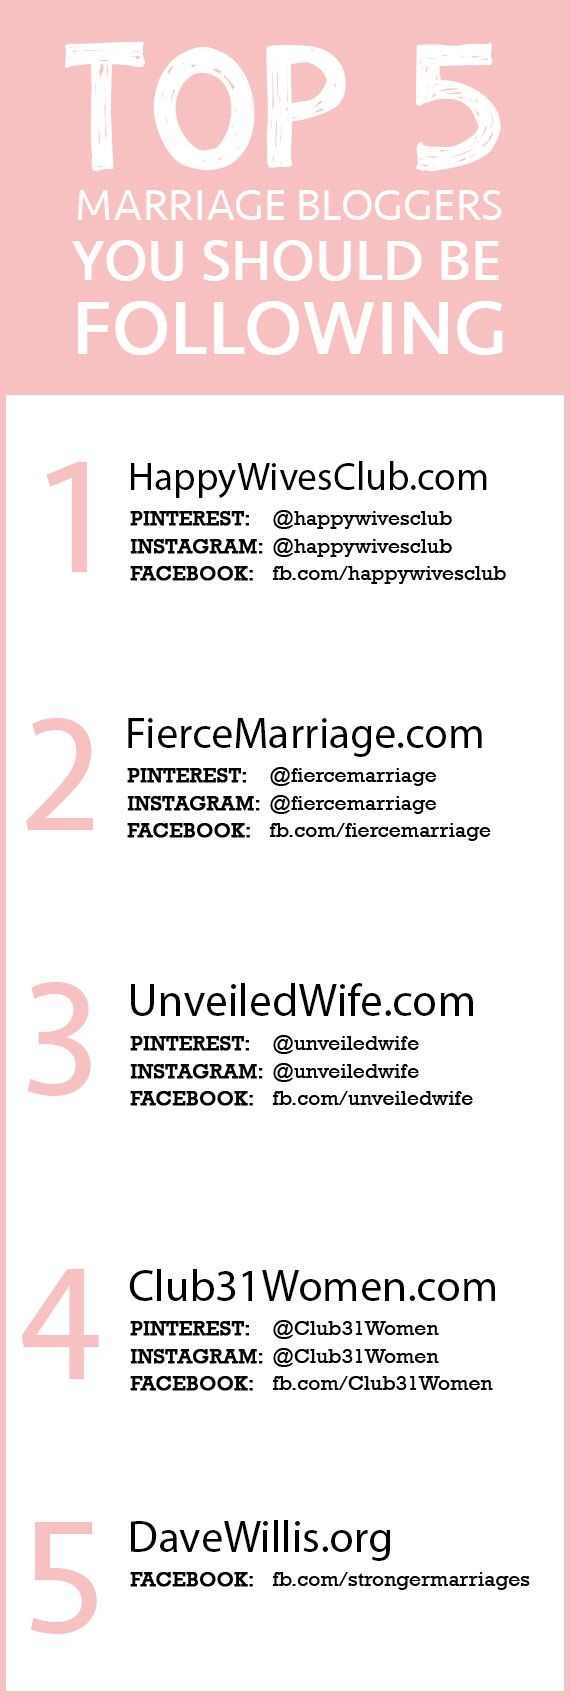 For all you married folks. These bloggers will inspire you.